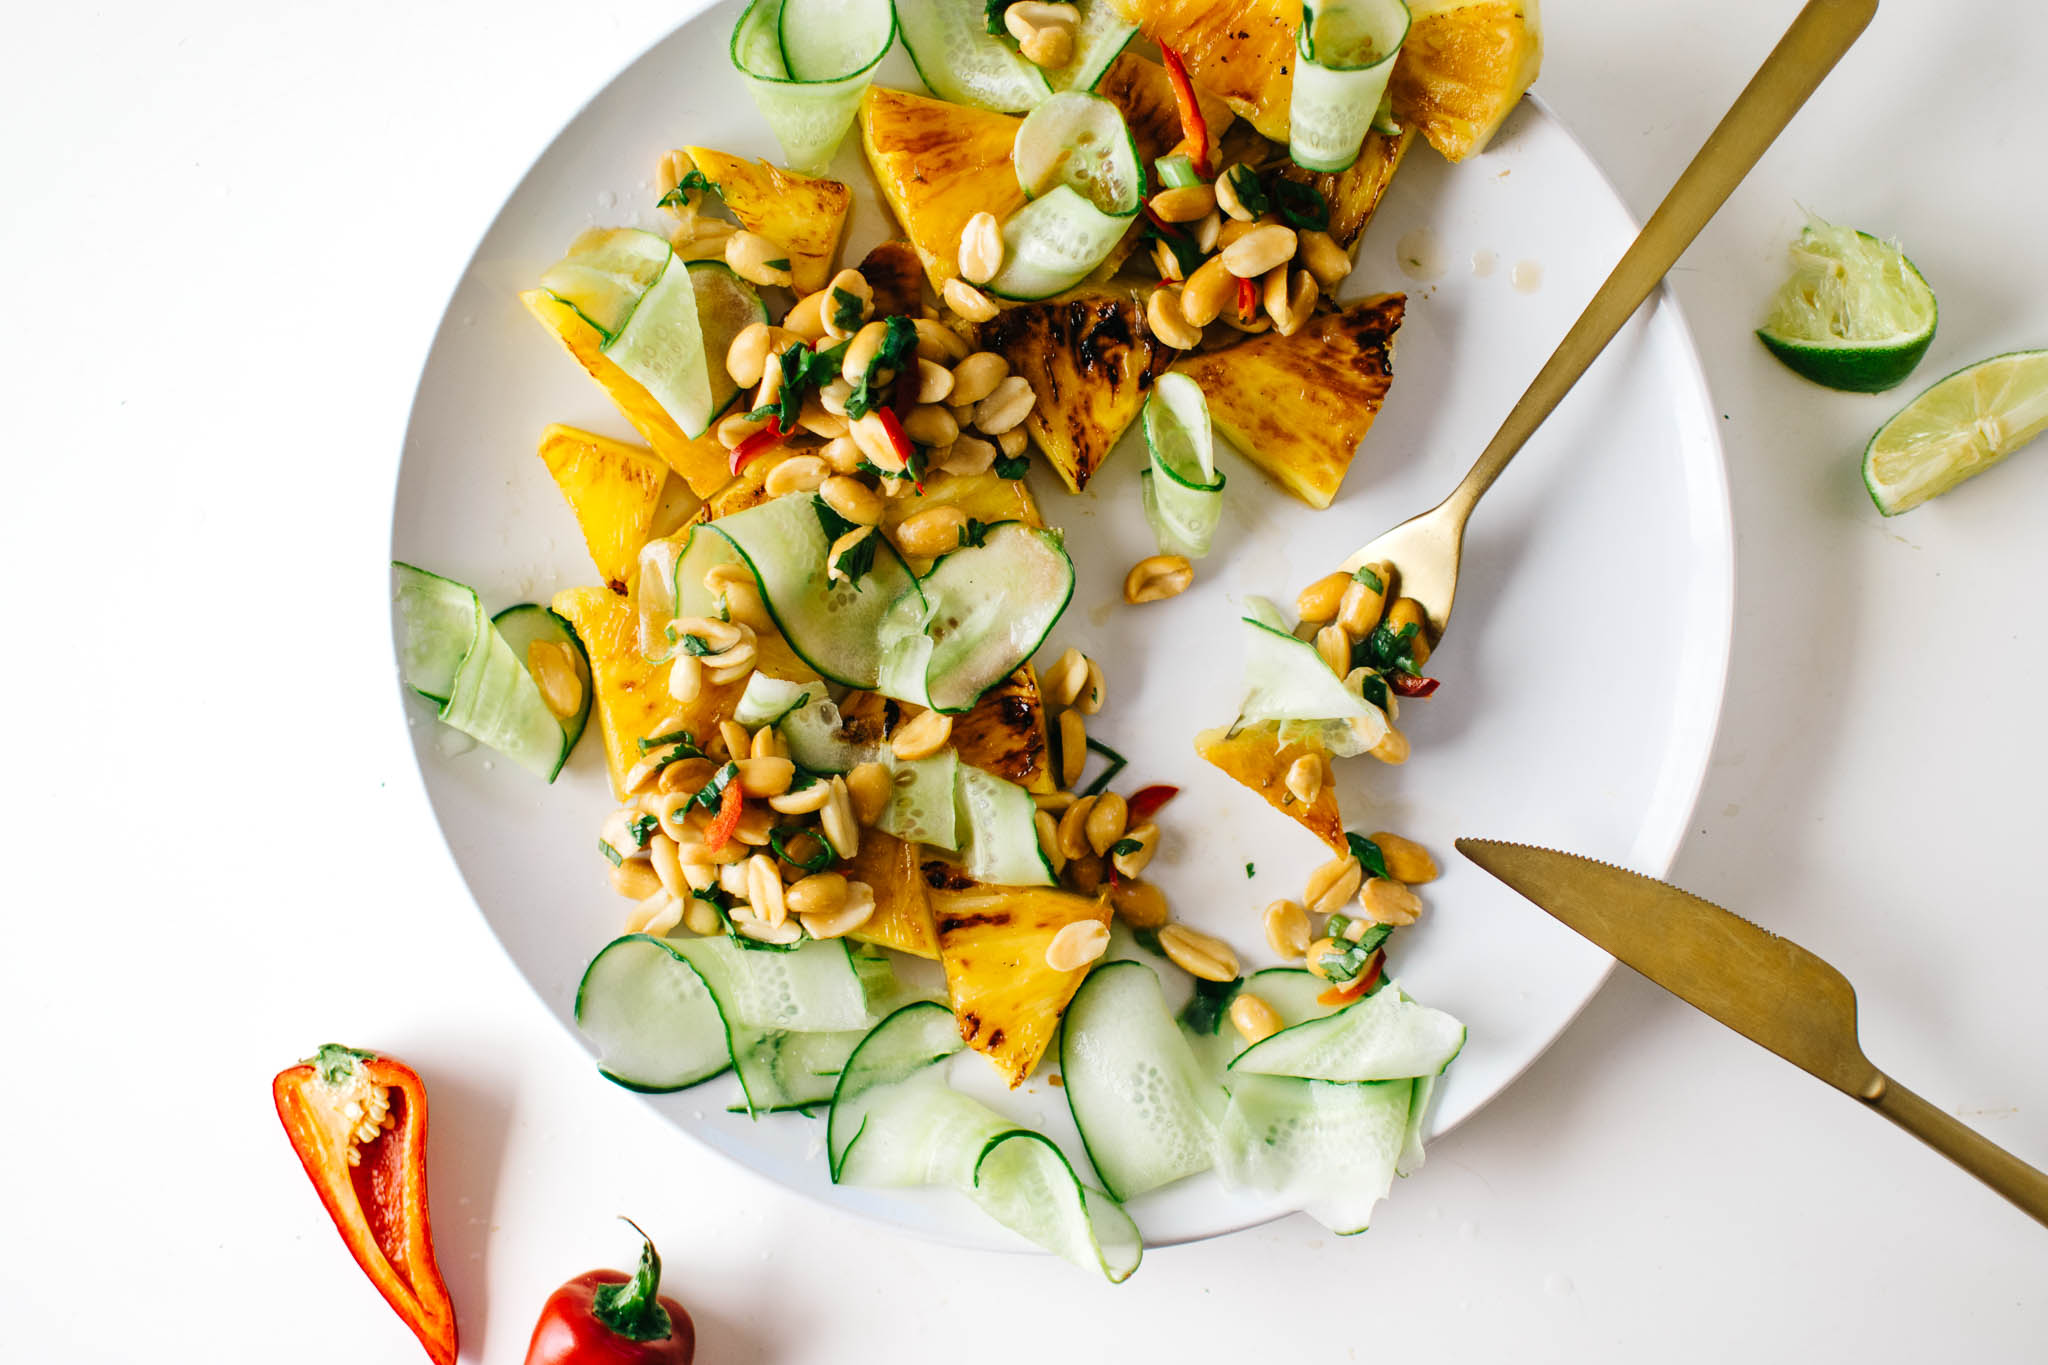 GRILLED PINEAPPLE & CUCUMBER SALAD WITH SPICY PEANUTS.